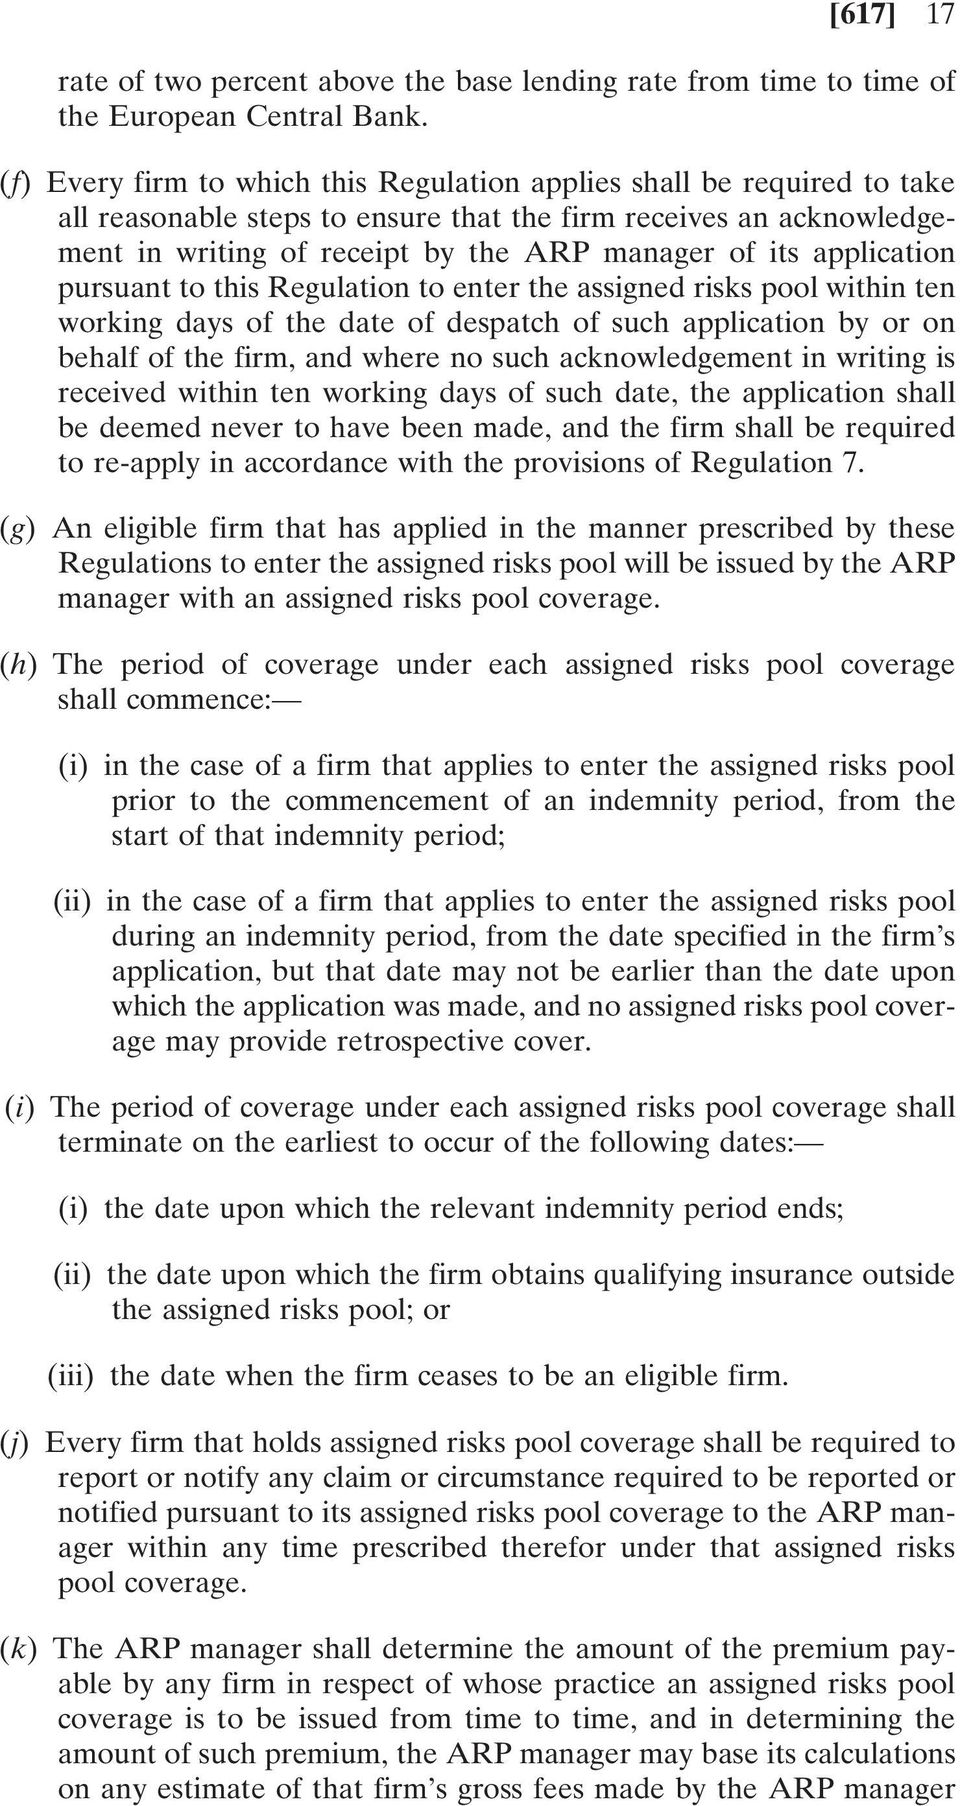 application pursuant to this Regulation to enter the assigned risks pool within ten working days of the date of despatch of such application by or on behalf of the firm, and where no such